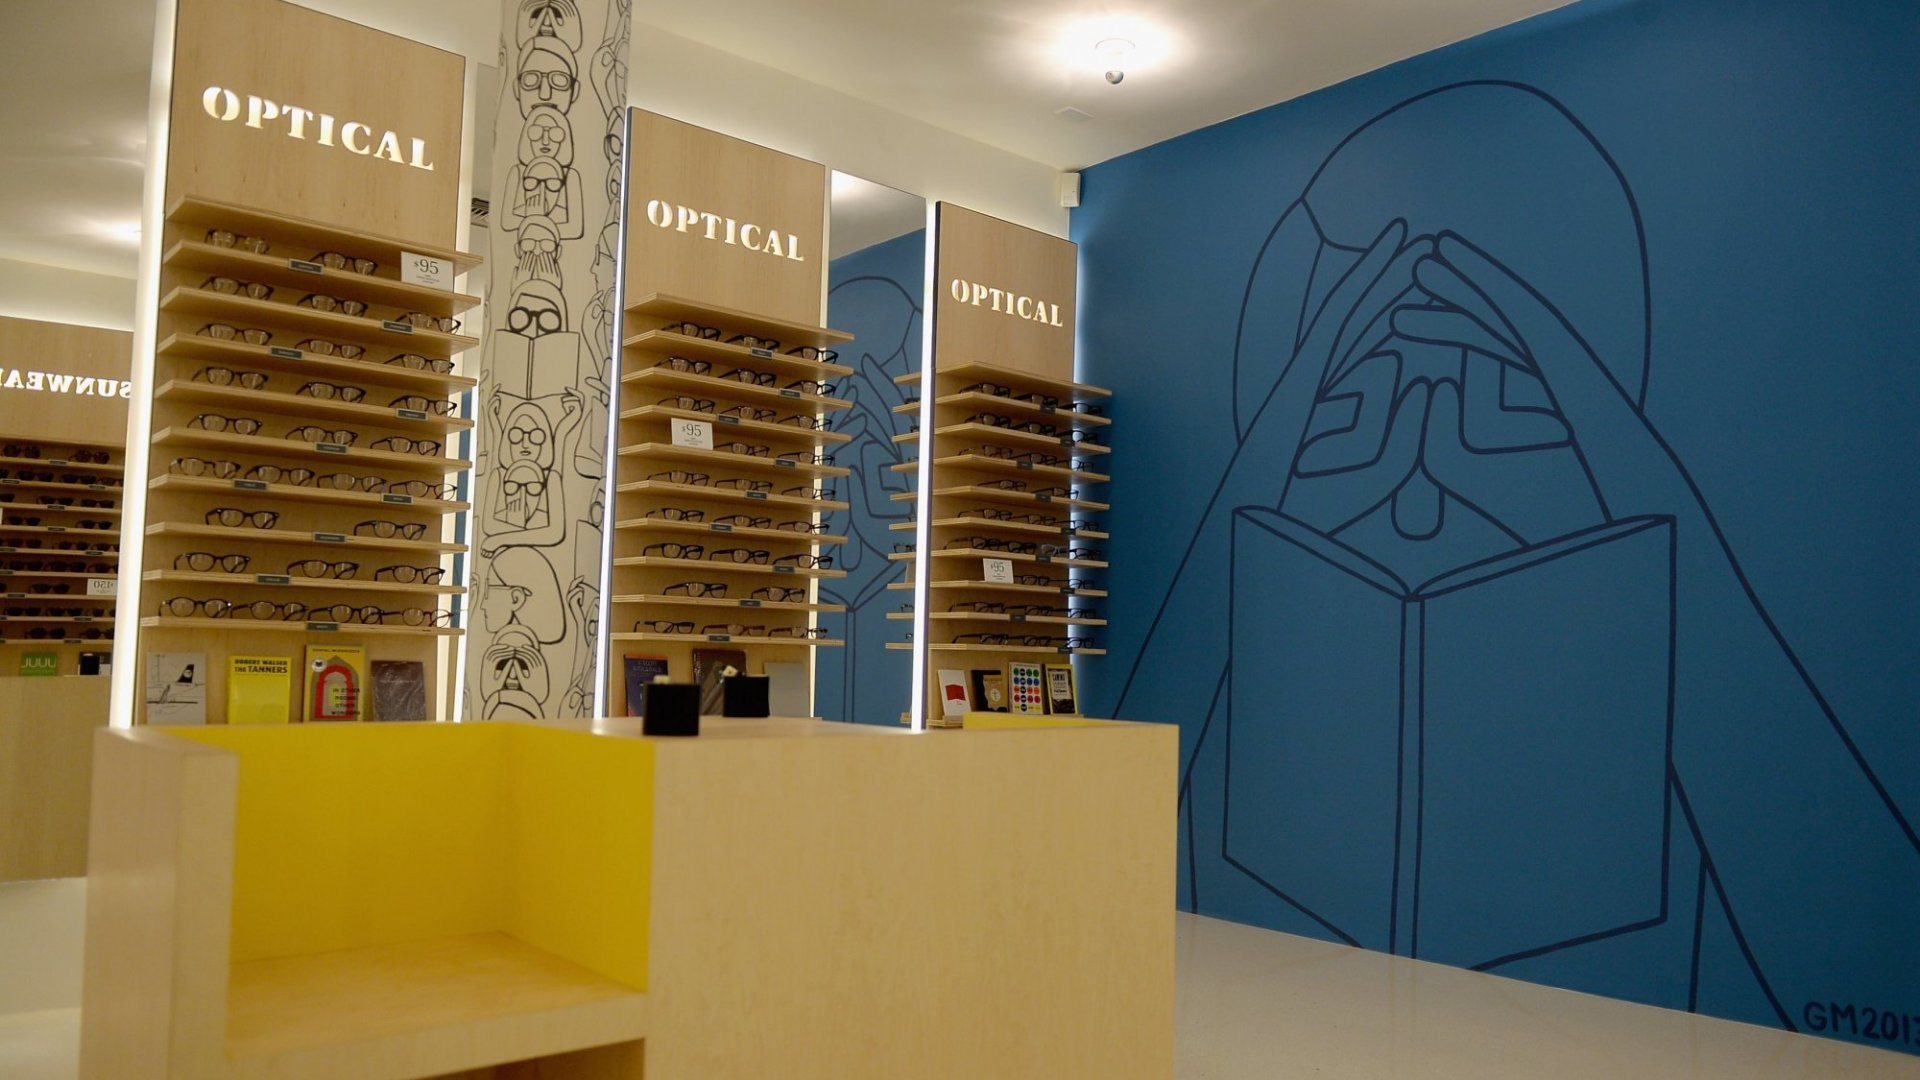 Warby Parker and Optometrists Are Now at War